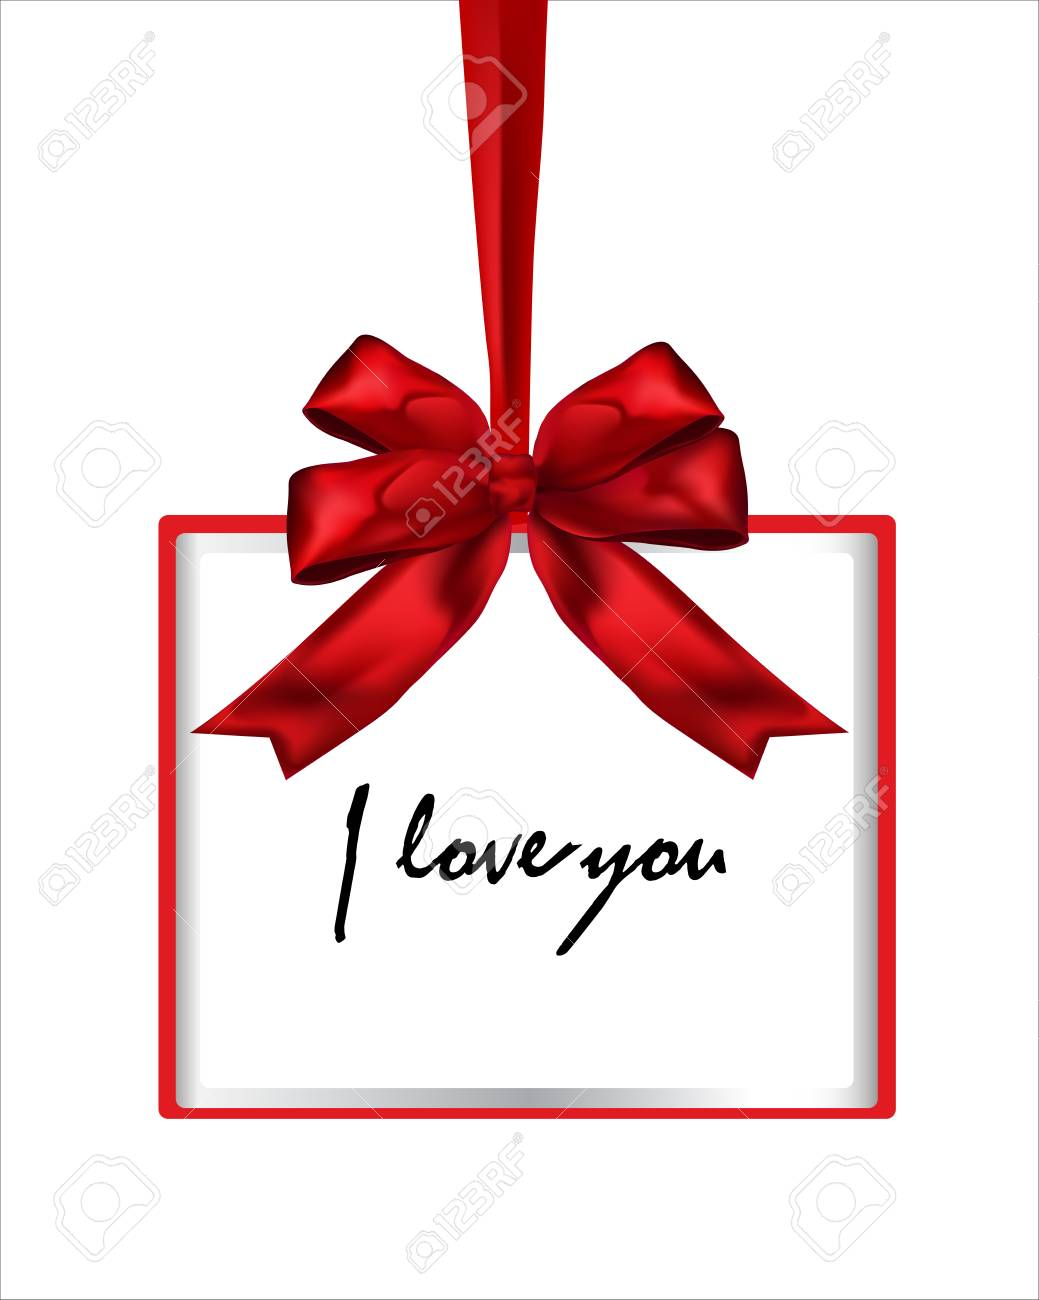 I Love You, Red Vector Gift Box Frame With Bow And Ribbon On ...